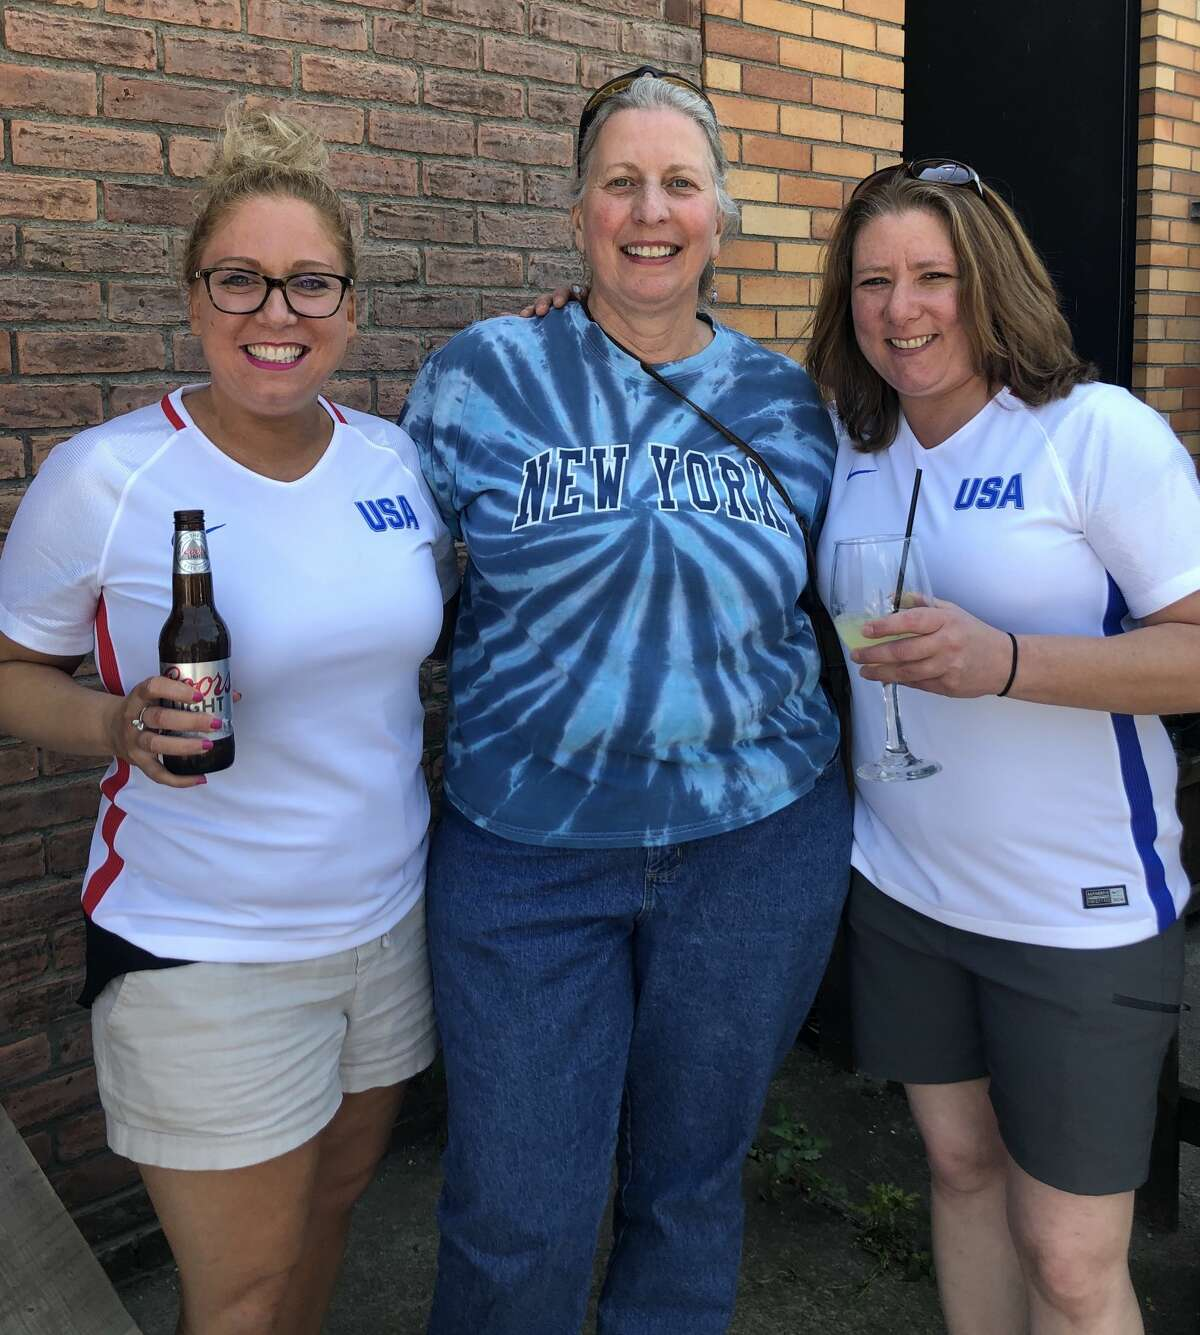 Were you Seen at Wolff's Biergarten for the USA Women's Soccer World Cup game in Albany on July 7, 2019?